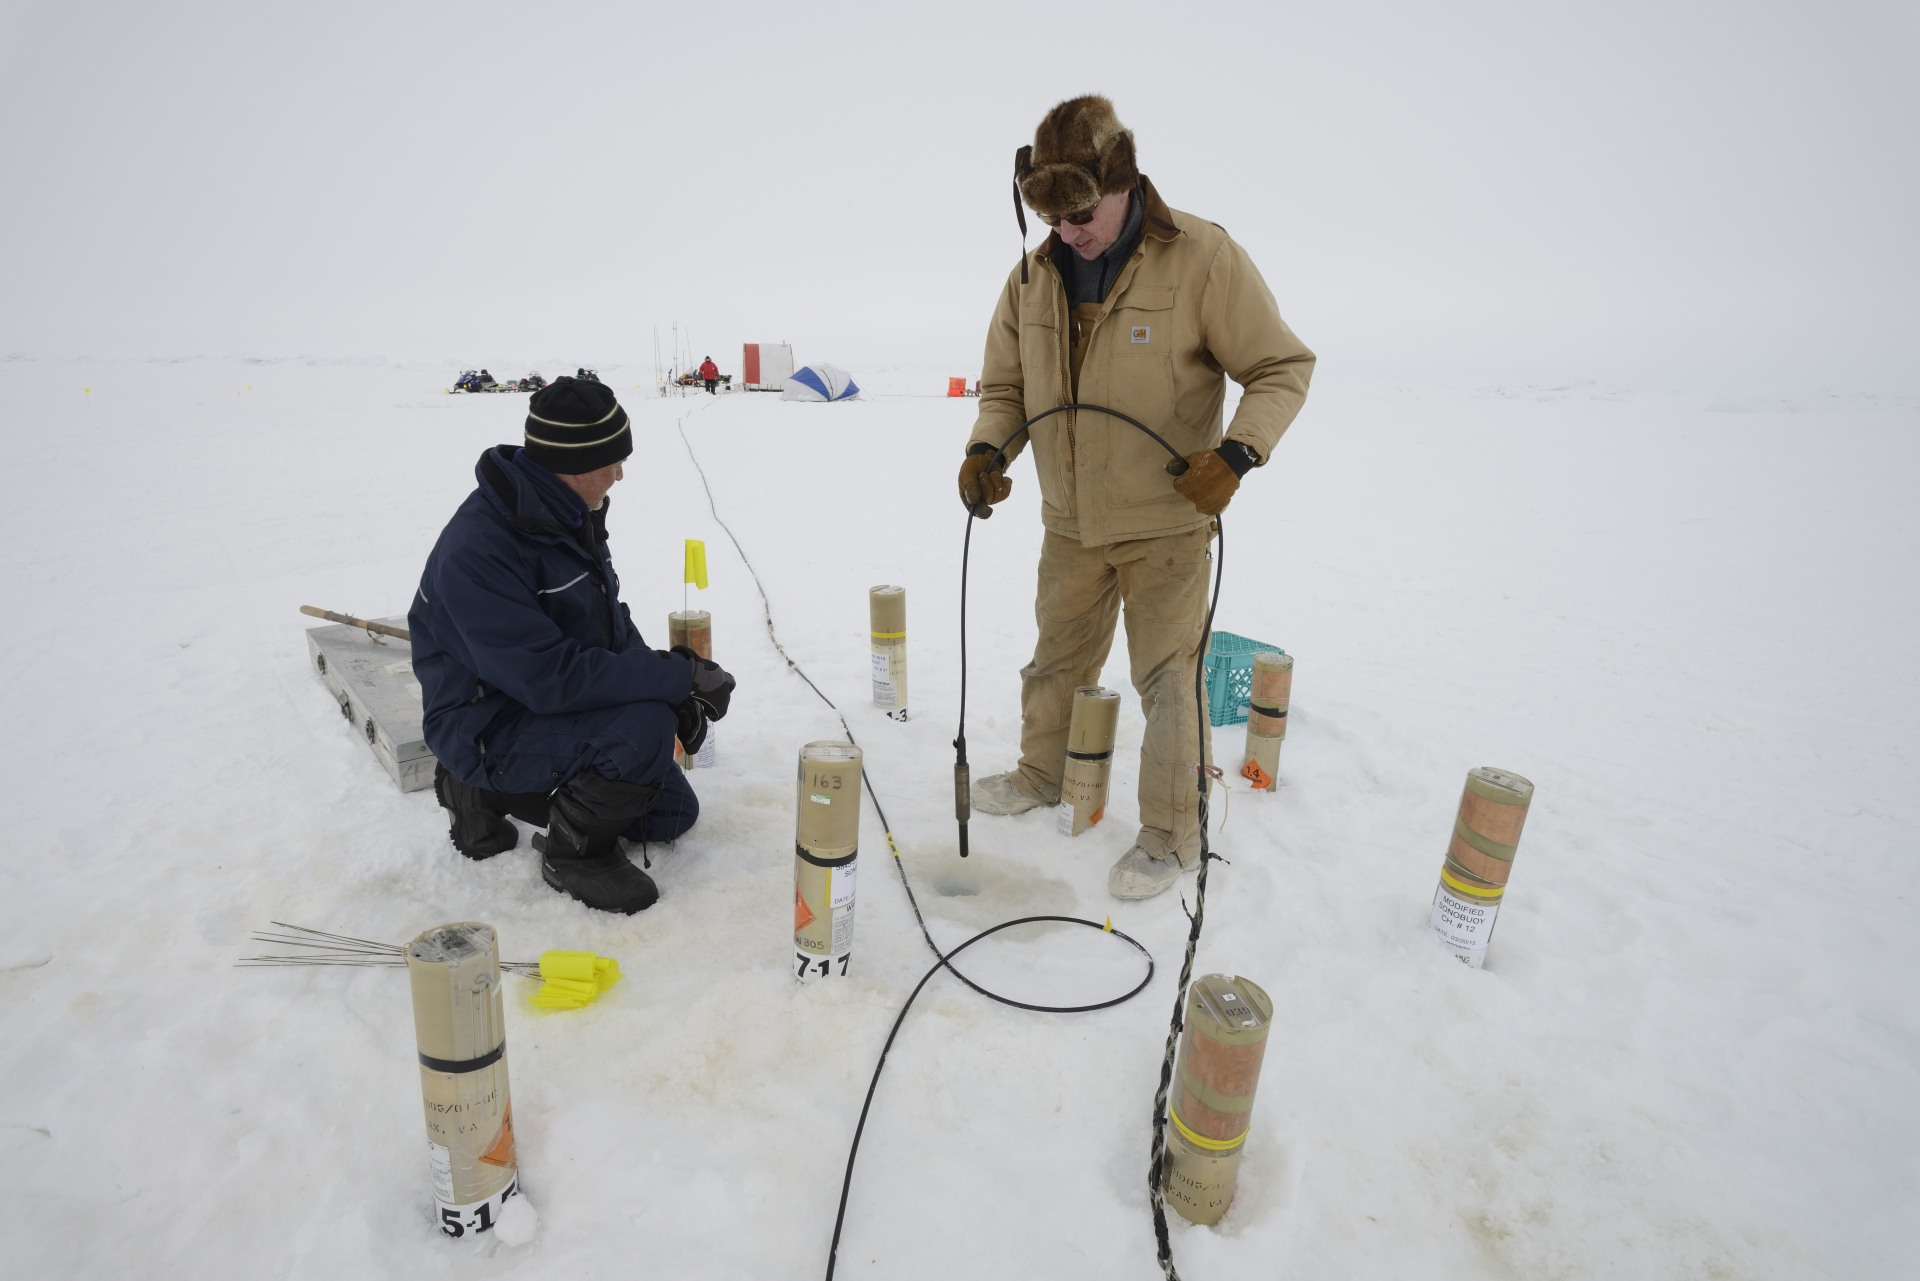 Hydrophones are put in the ice to monitor sound.